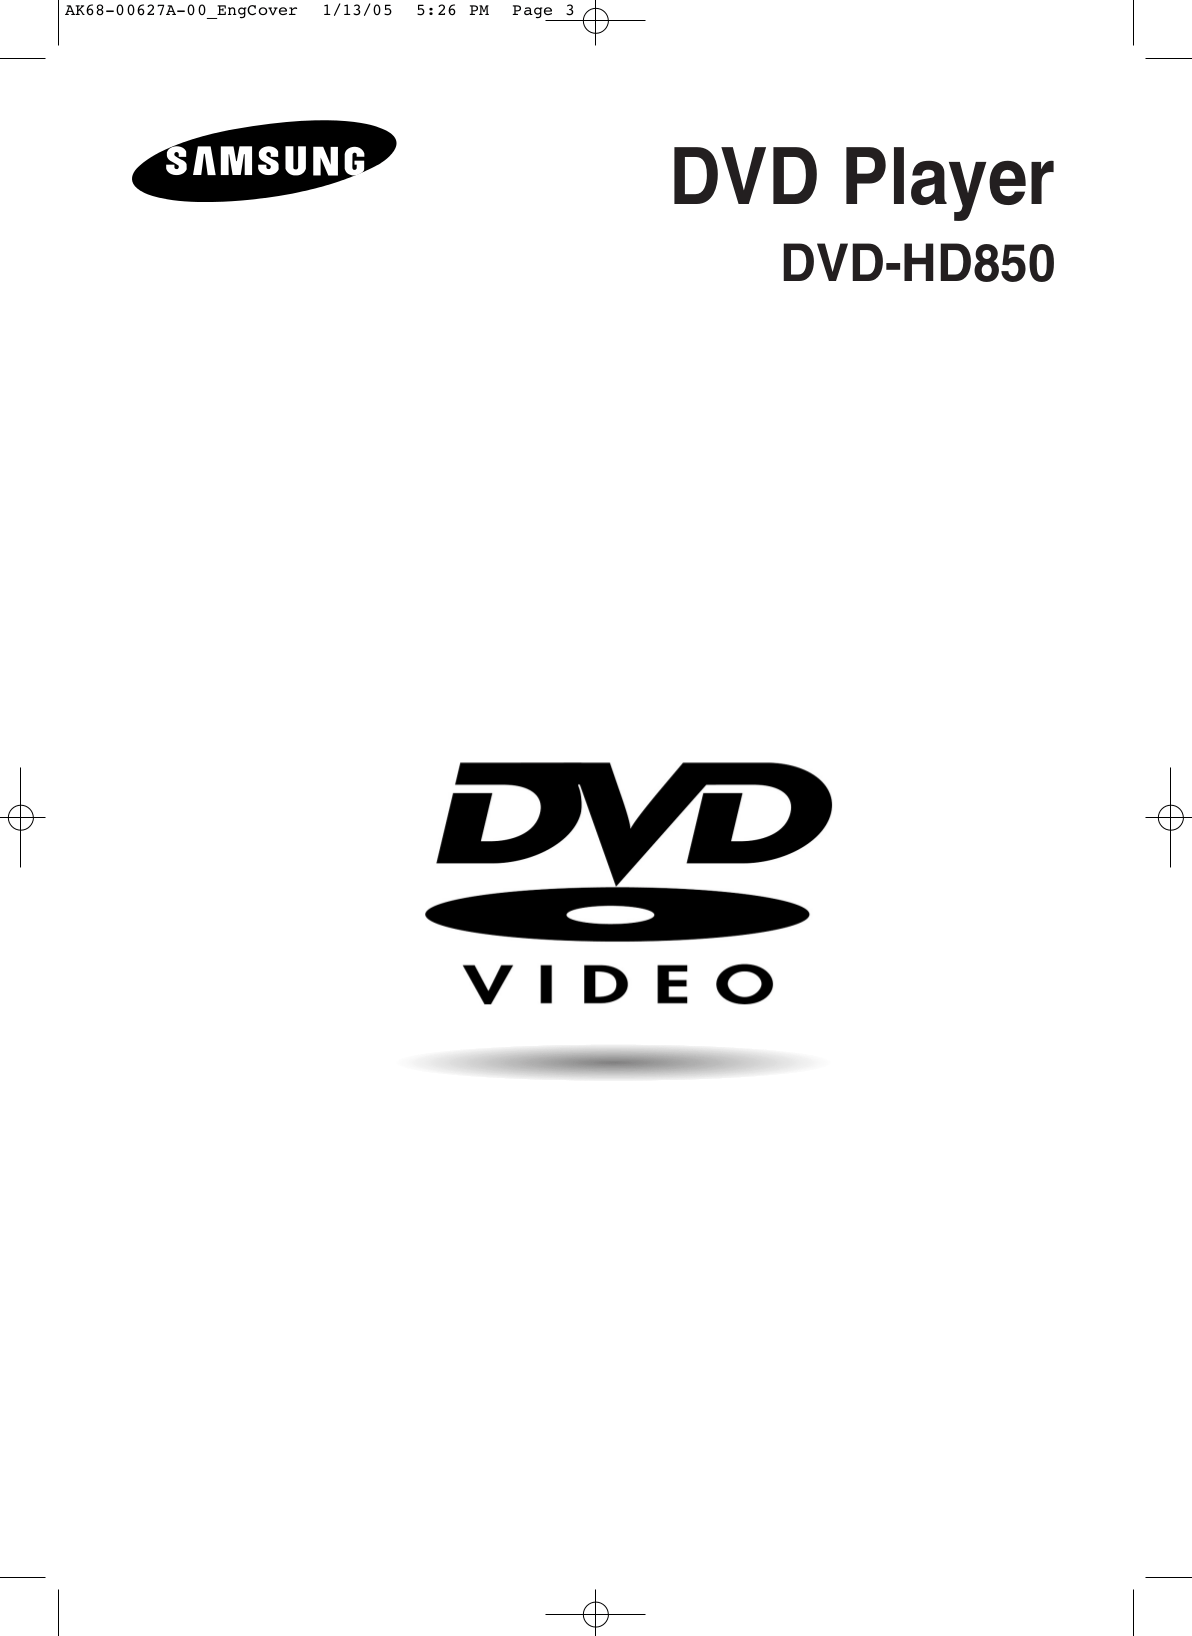 Download free pdf for Samsung DVD-HD850 DVD Players manual